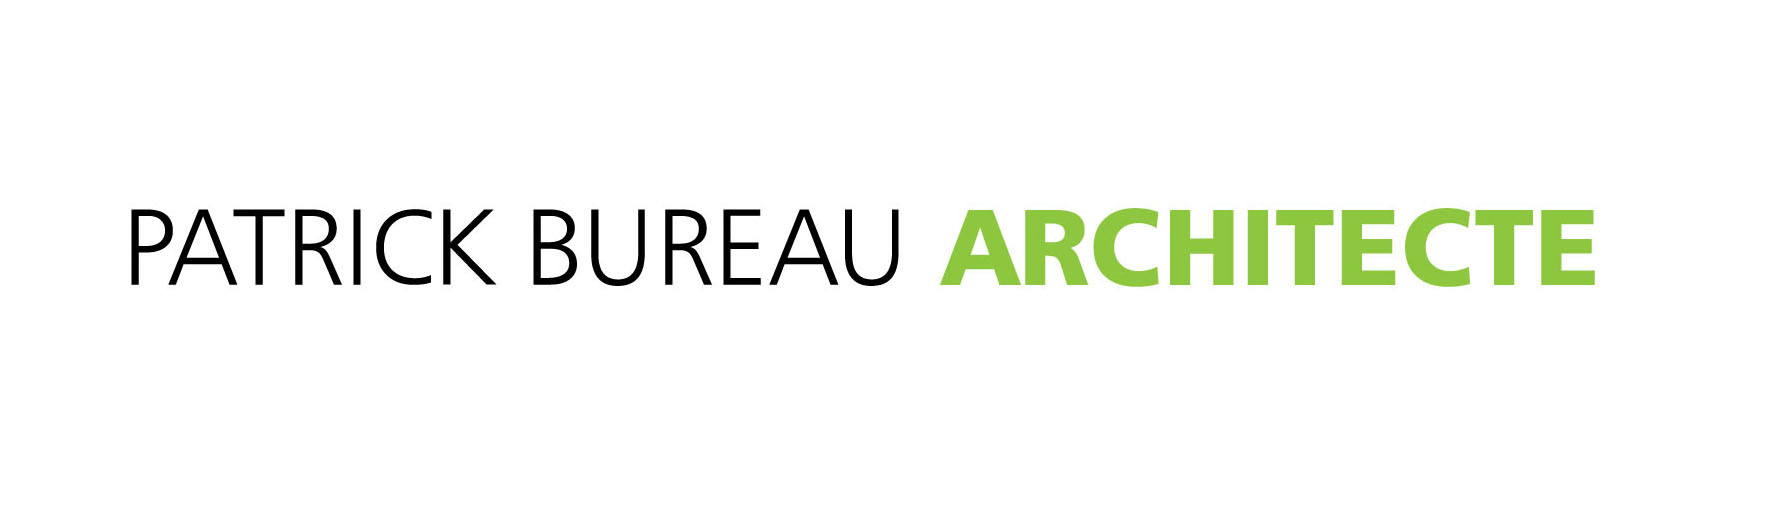 Patrick bureau ordre des architectes for Bureau architecte